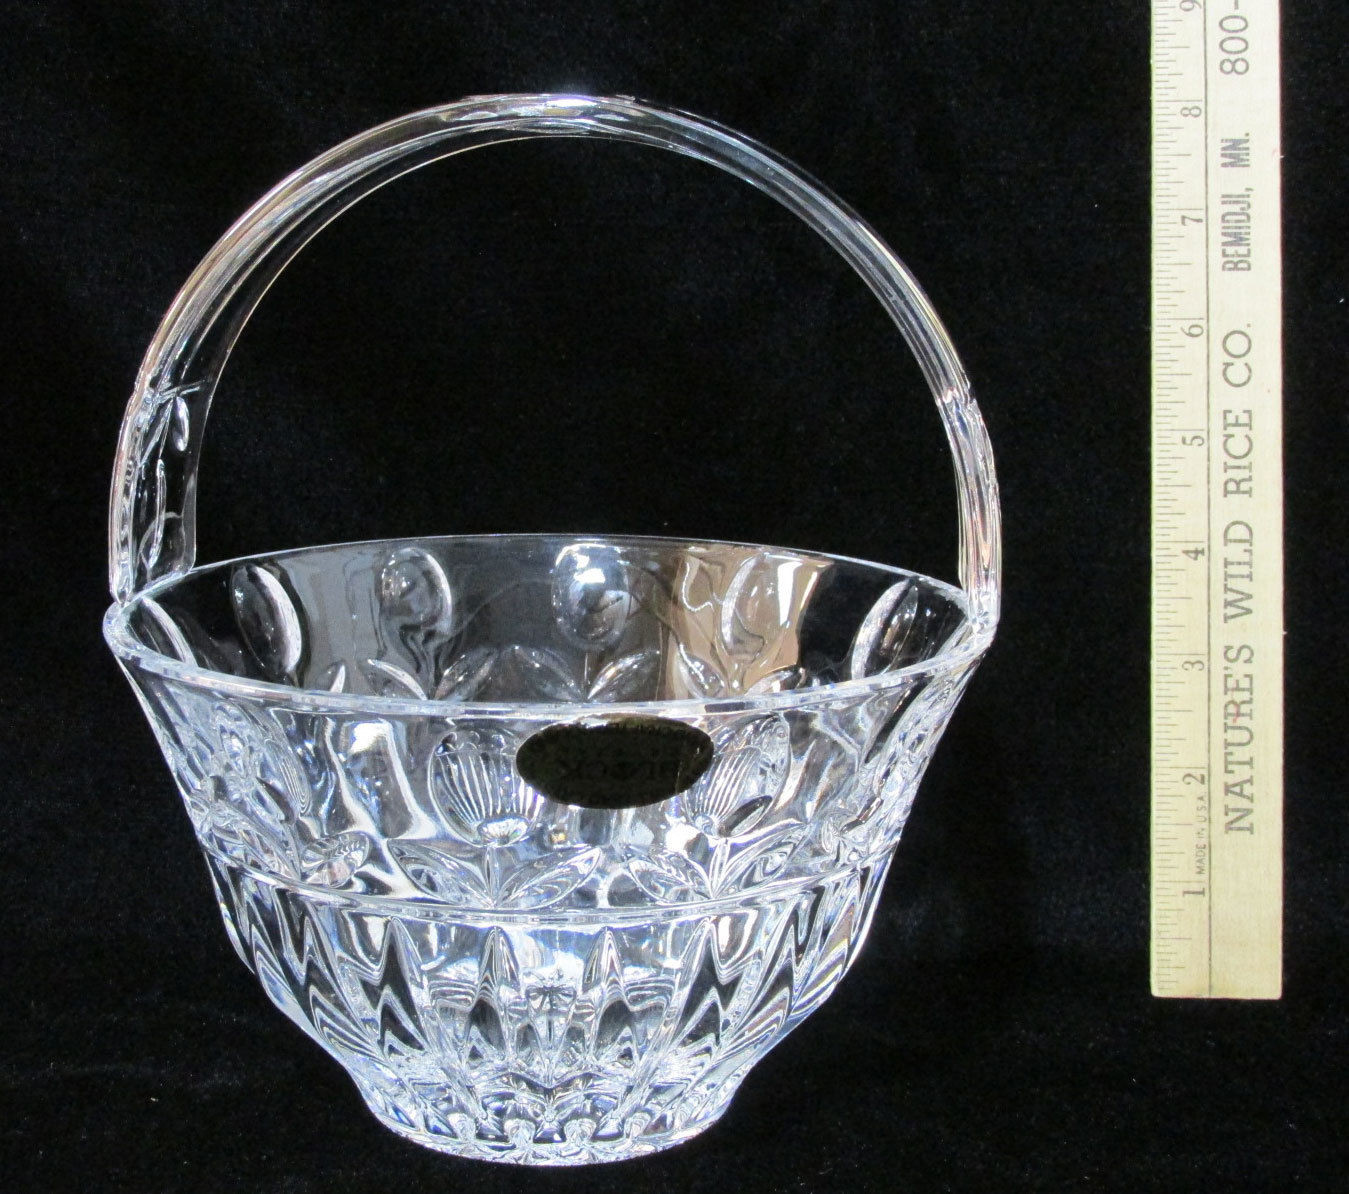 lead crystal vase made in poland of tulip garden crystal glass flower basket bowl w handle poland block with regard to tulip garden crystal glass flower basket bowl w handle poland block 24